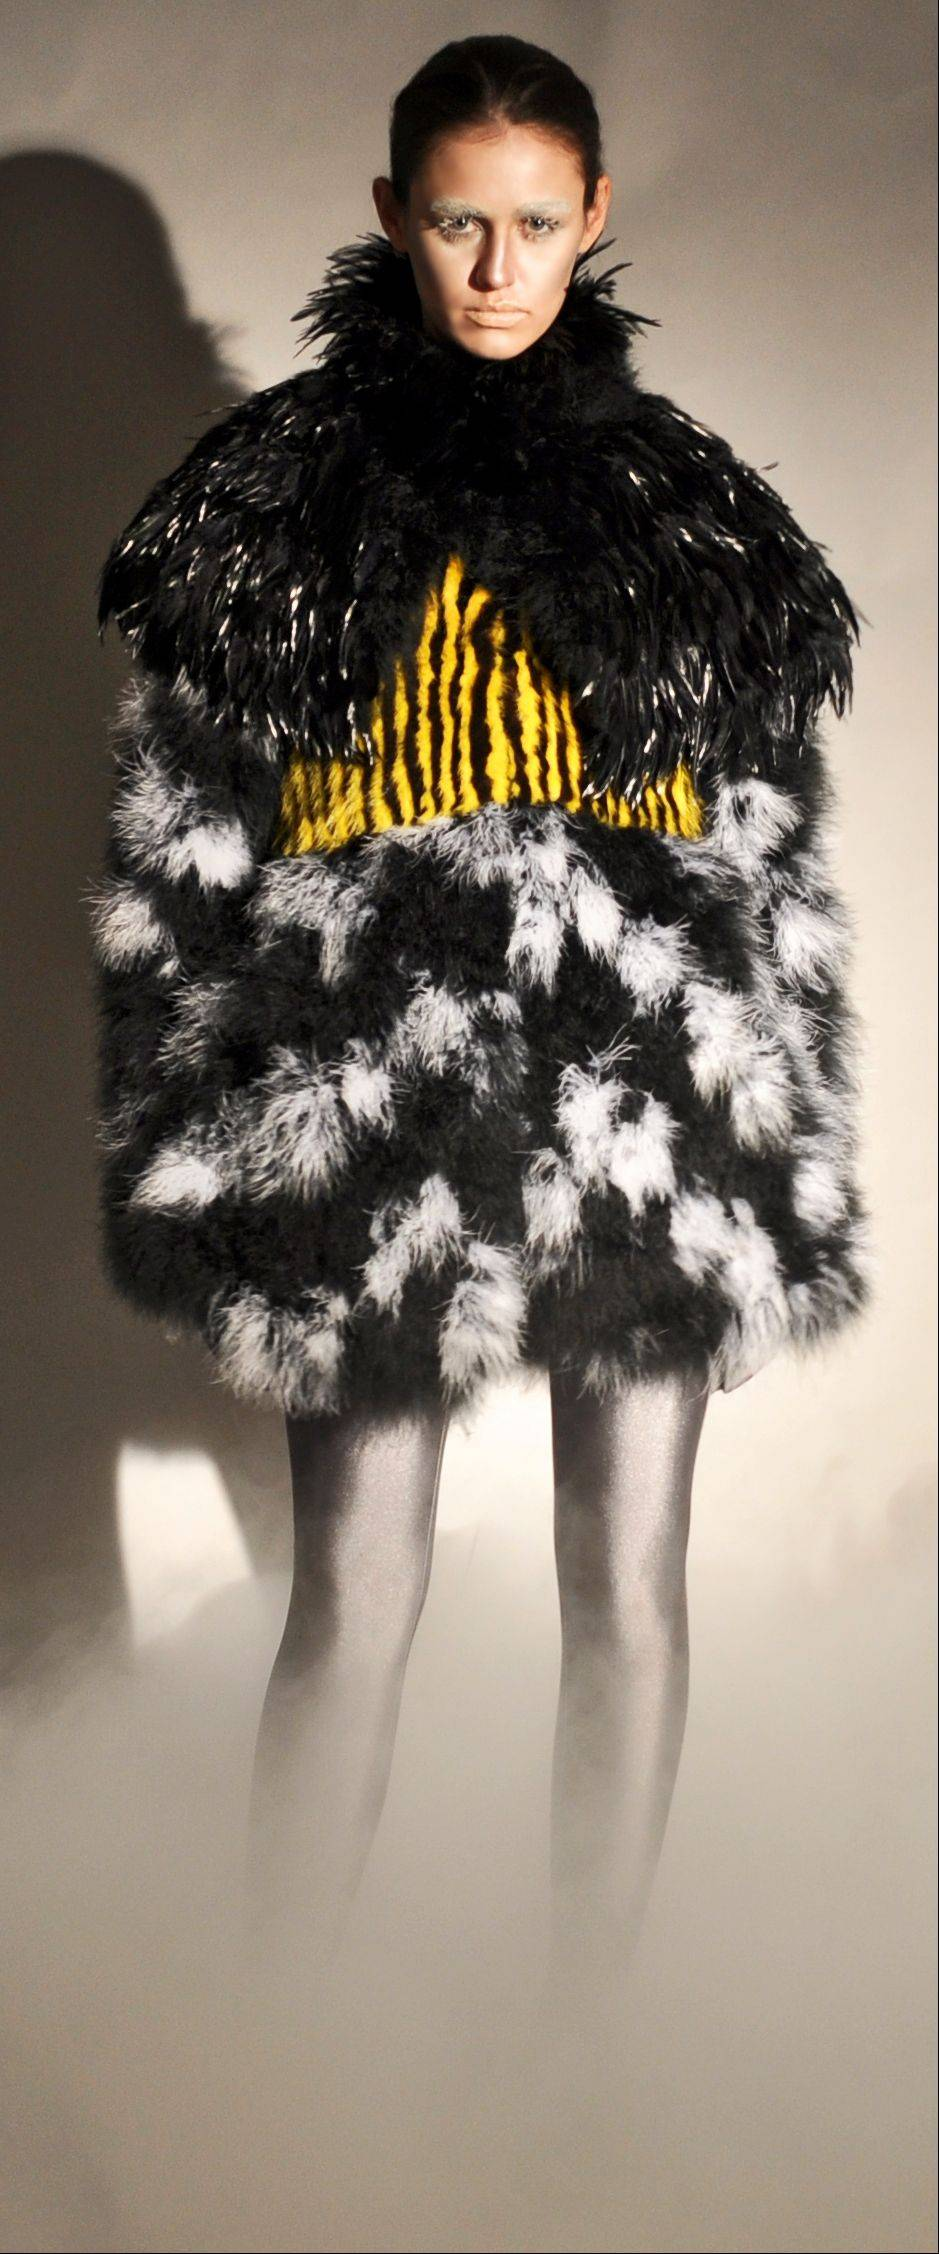 A black white and yellow fur coat, part of Adrienne Landau's fall 2011 collection.